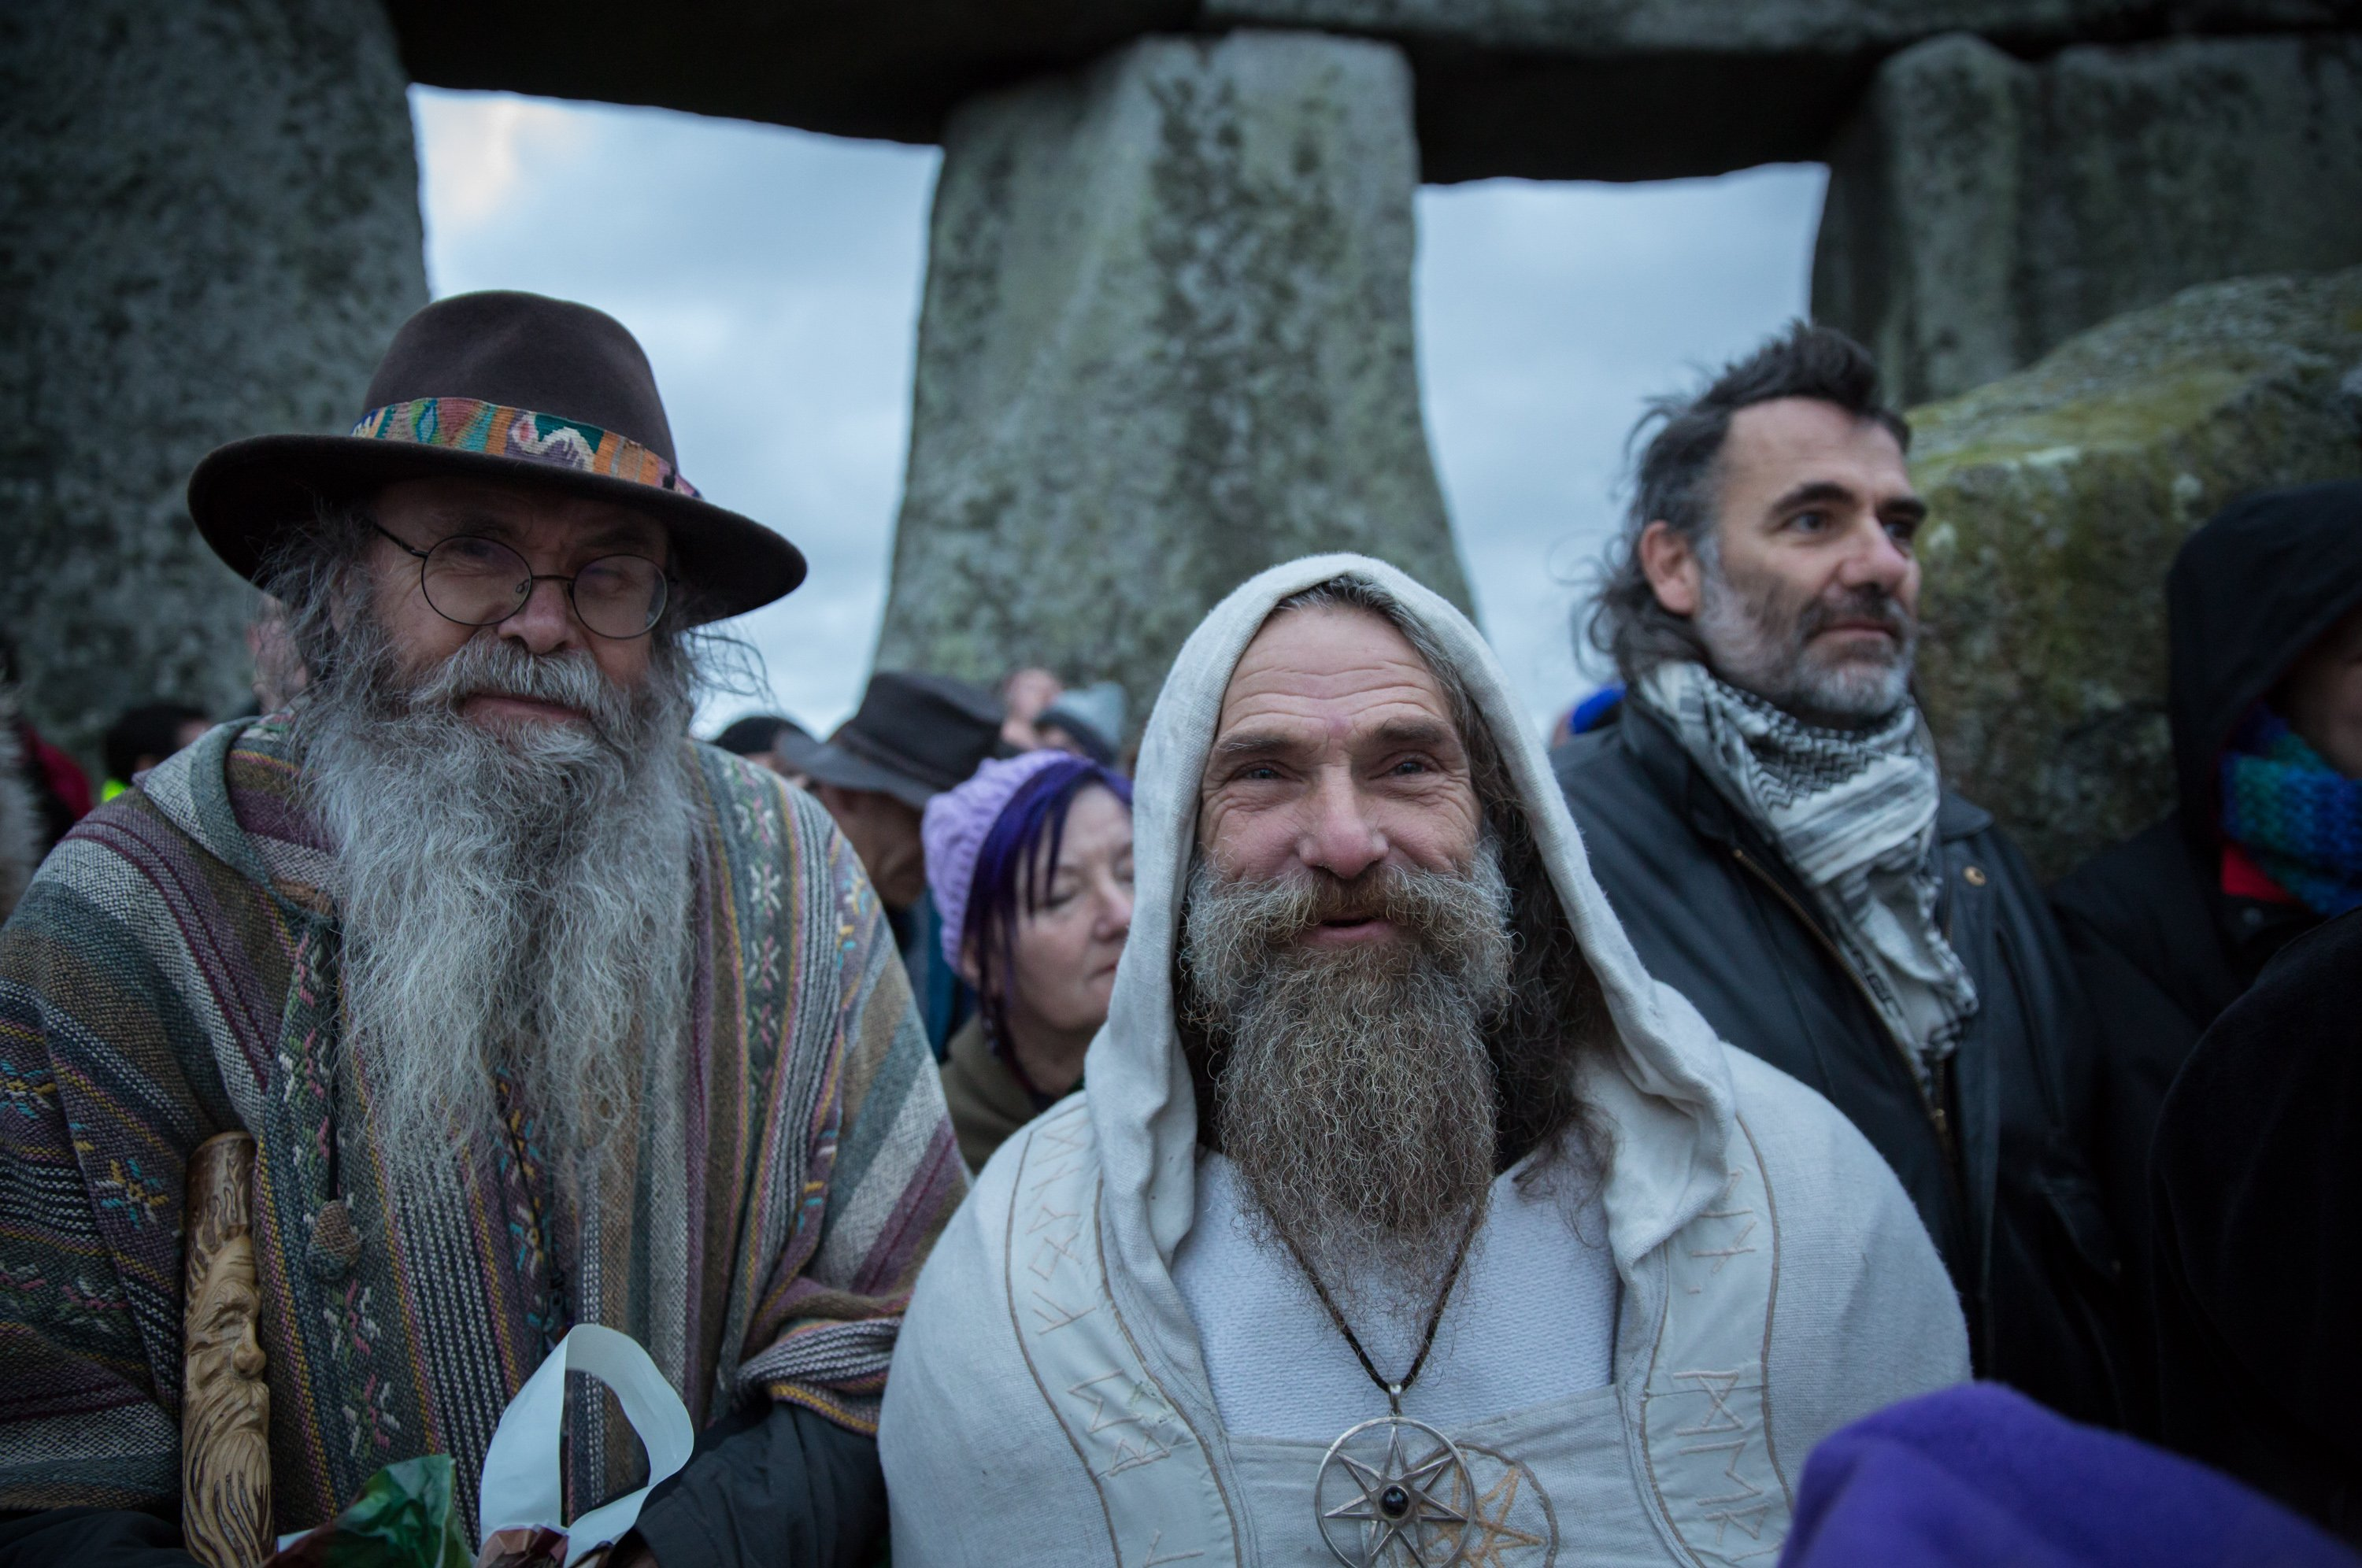 Druids, pagans and revelers gather in the centre of Stonehenge on Dec. 22, 2015 in Wiltshire, England.